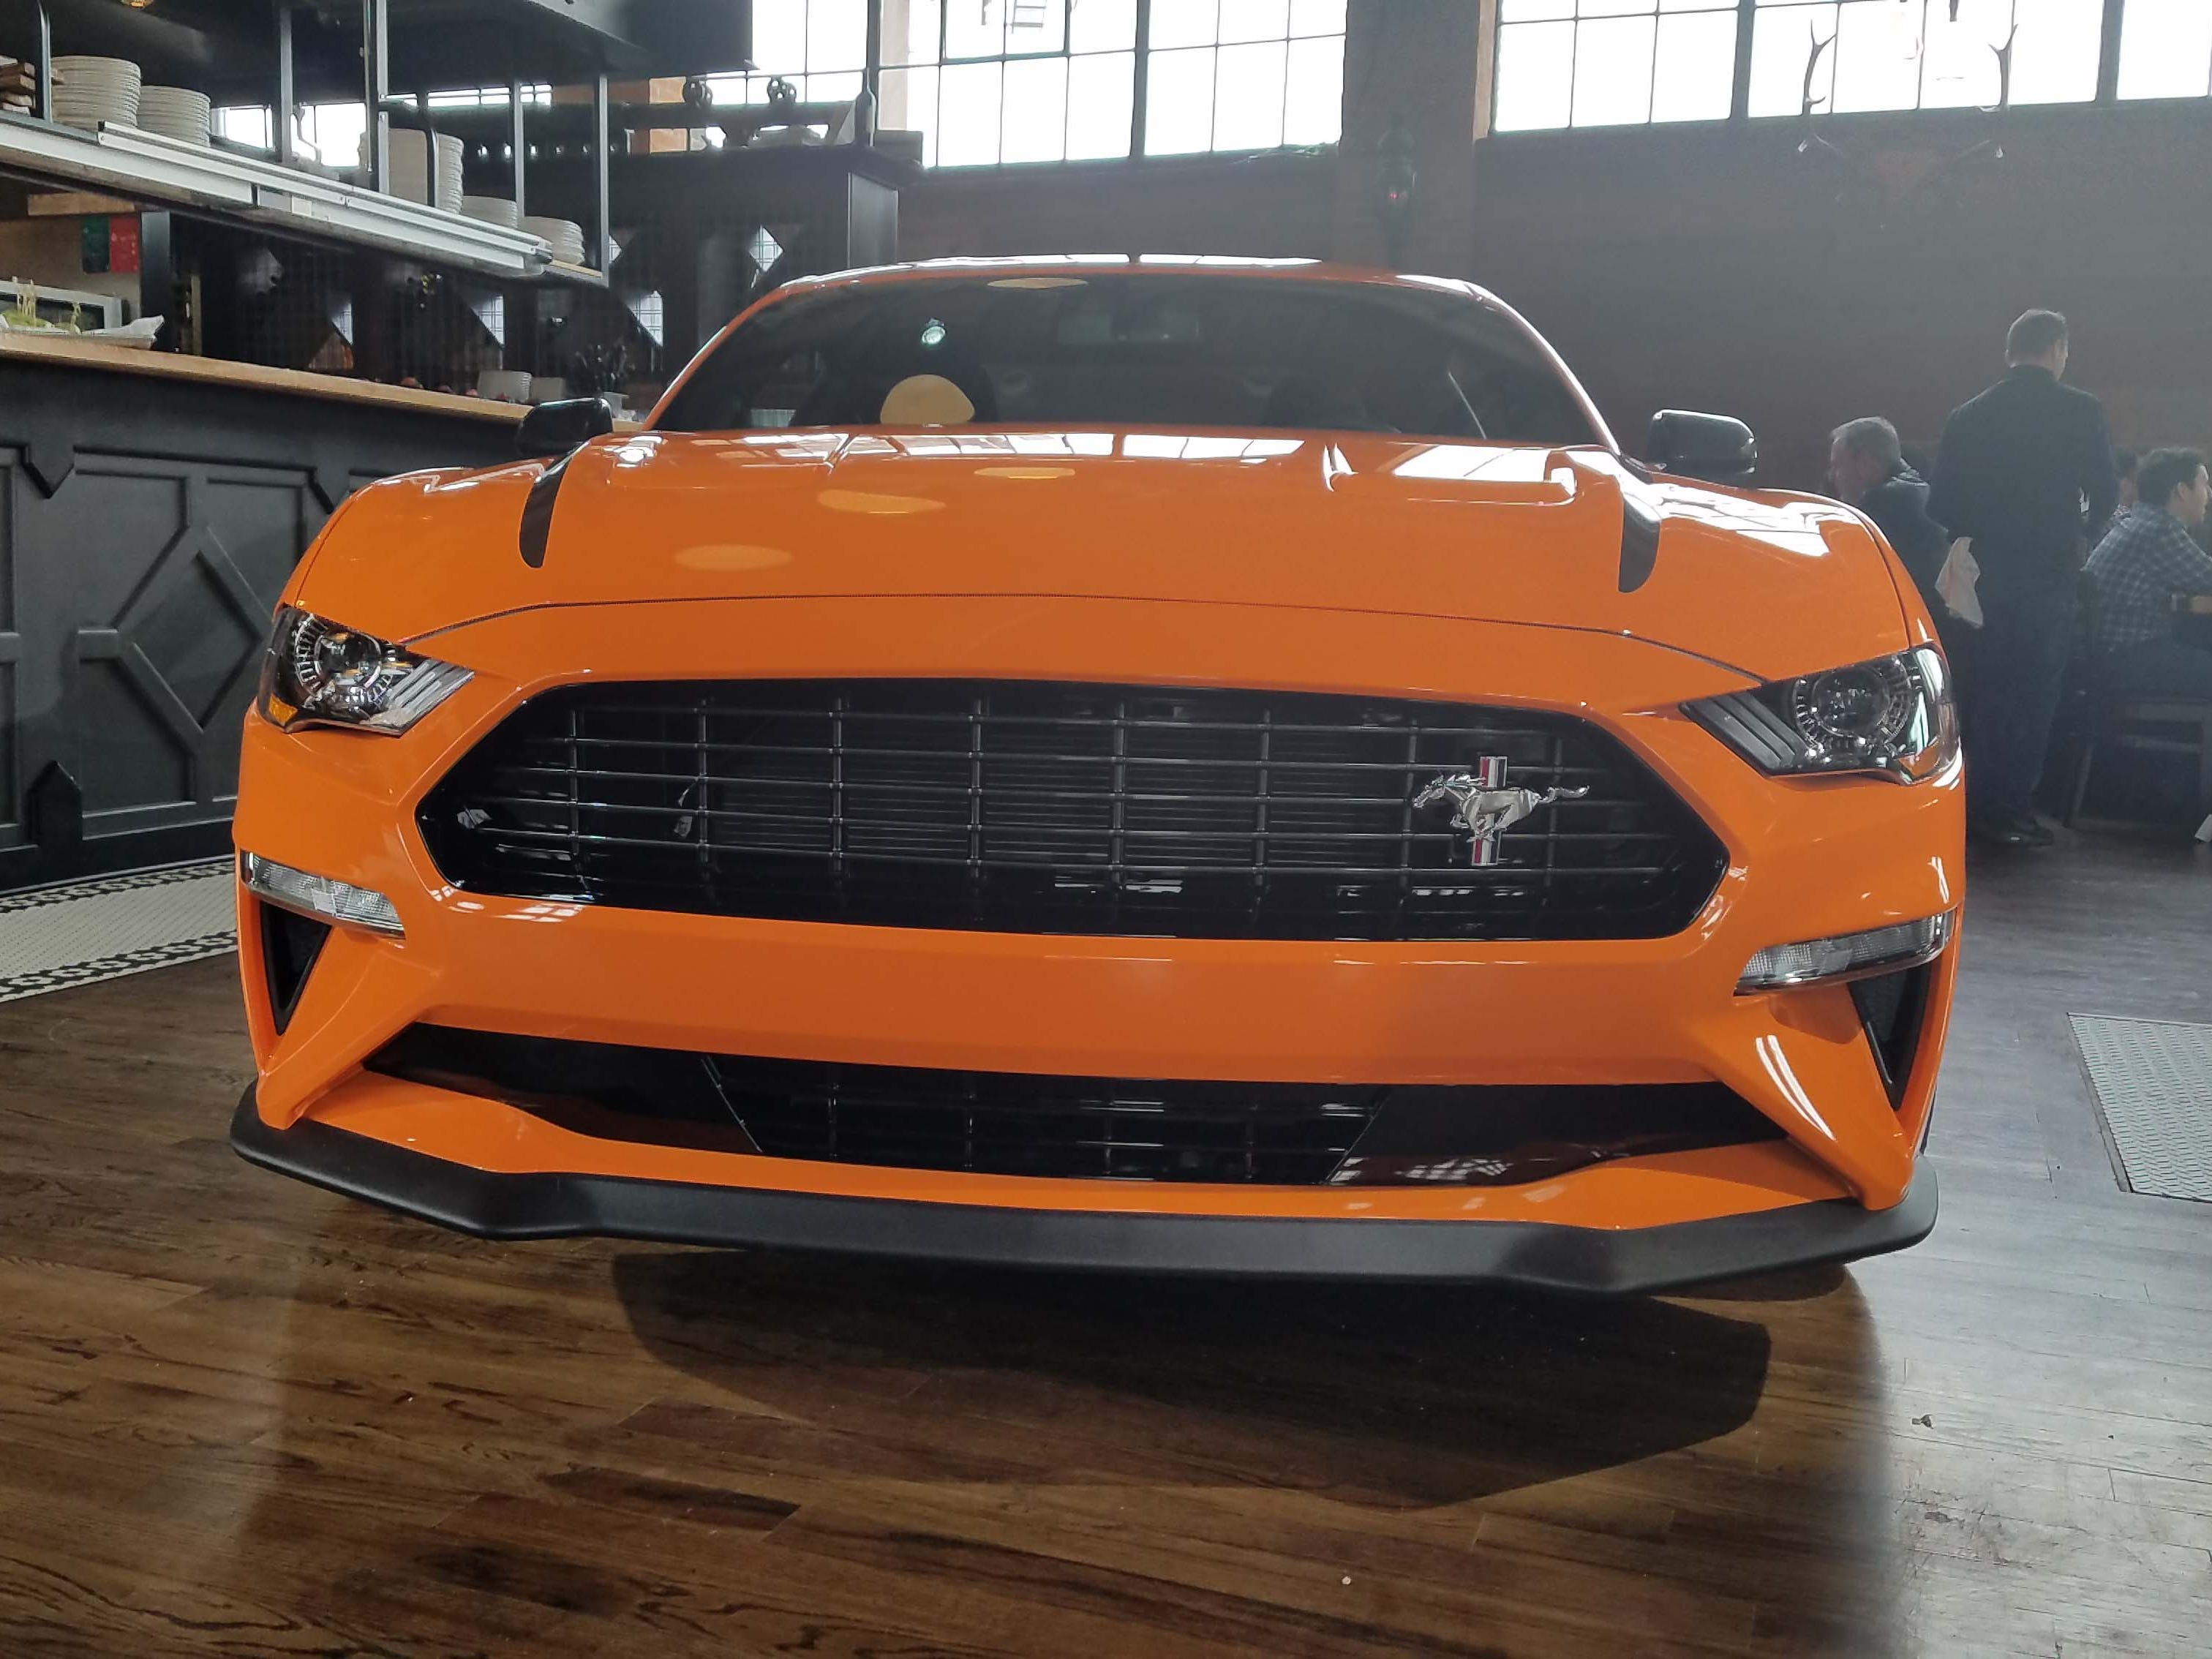 The Ford Mustang Ecoboost High Performance is distinguished by its black-out mesh grille and front splitter.